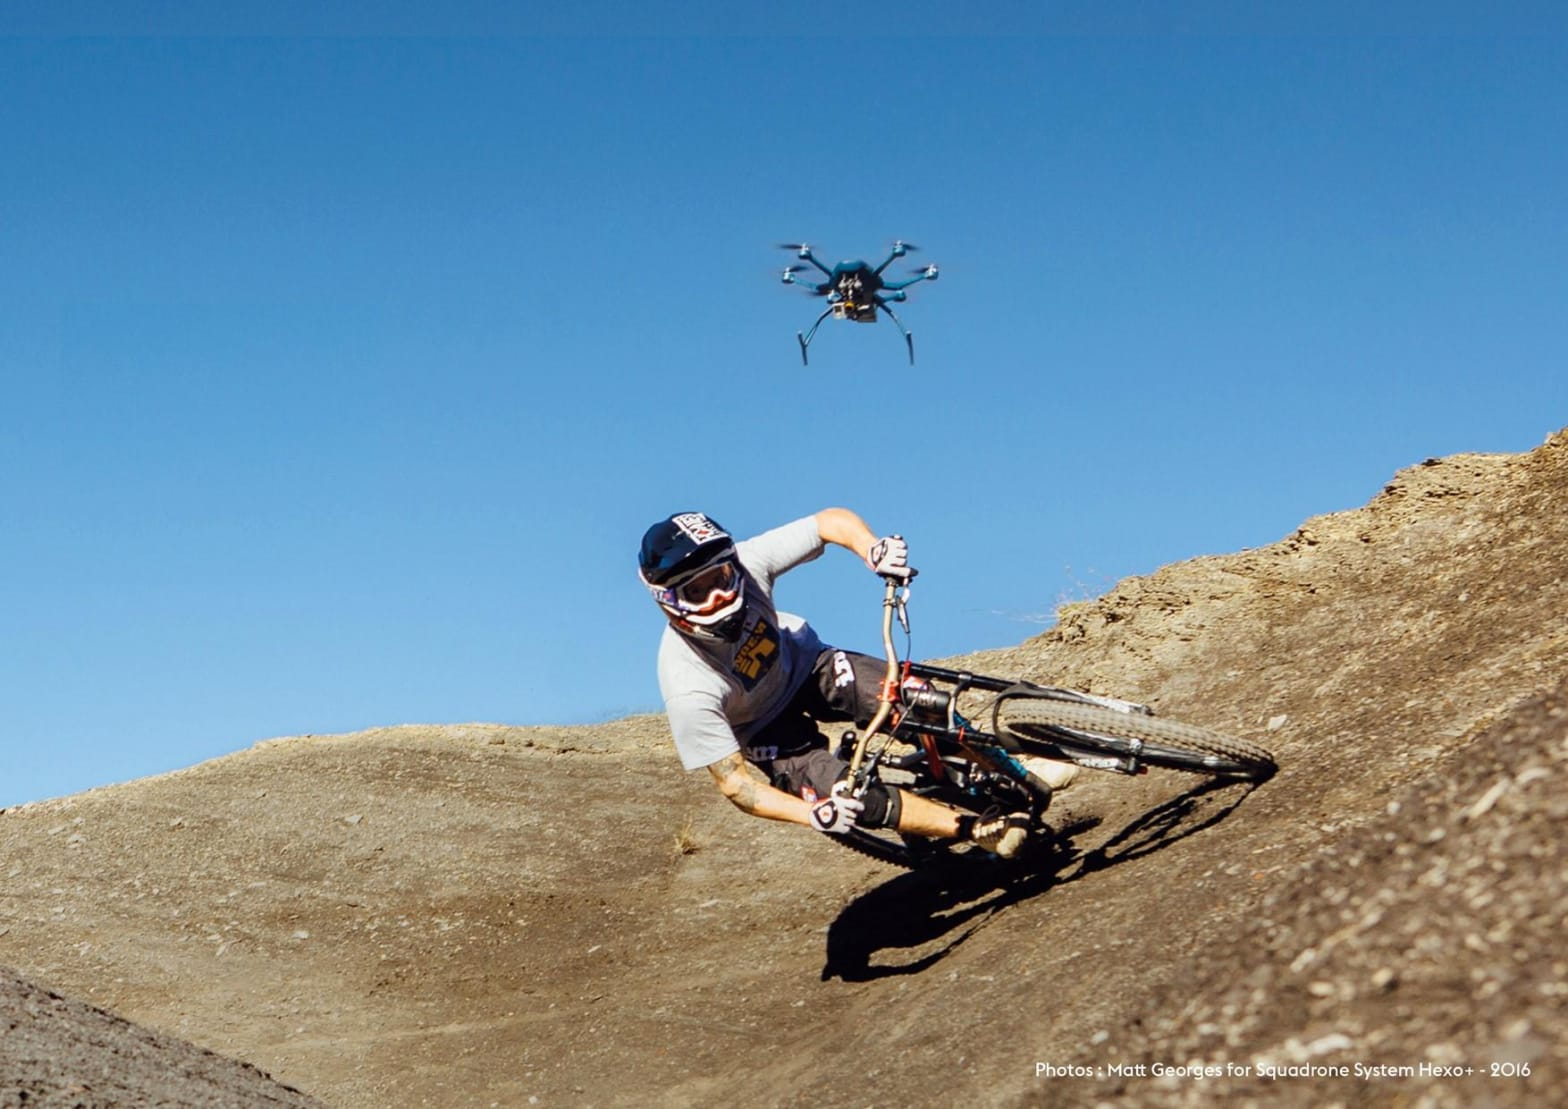 10 ways drones will impact sports